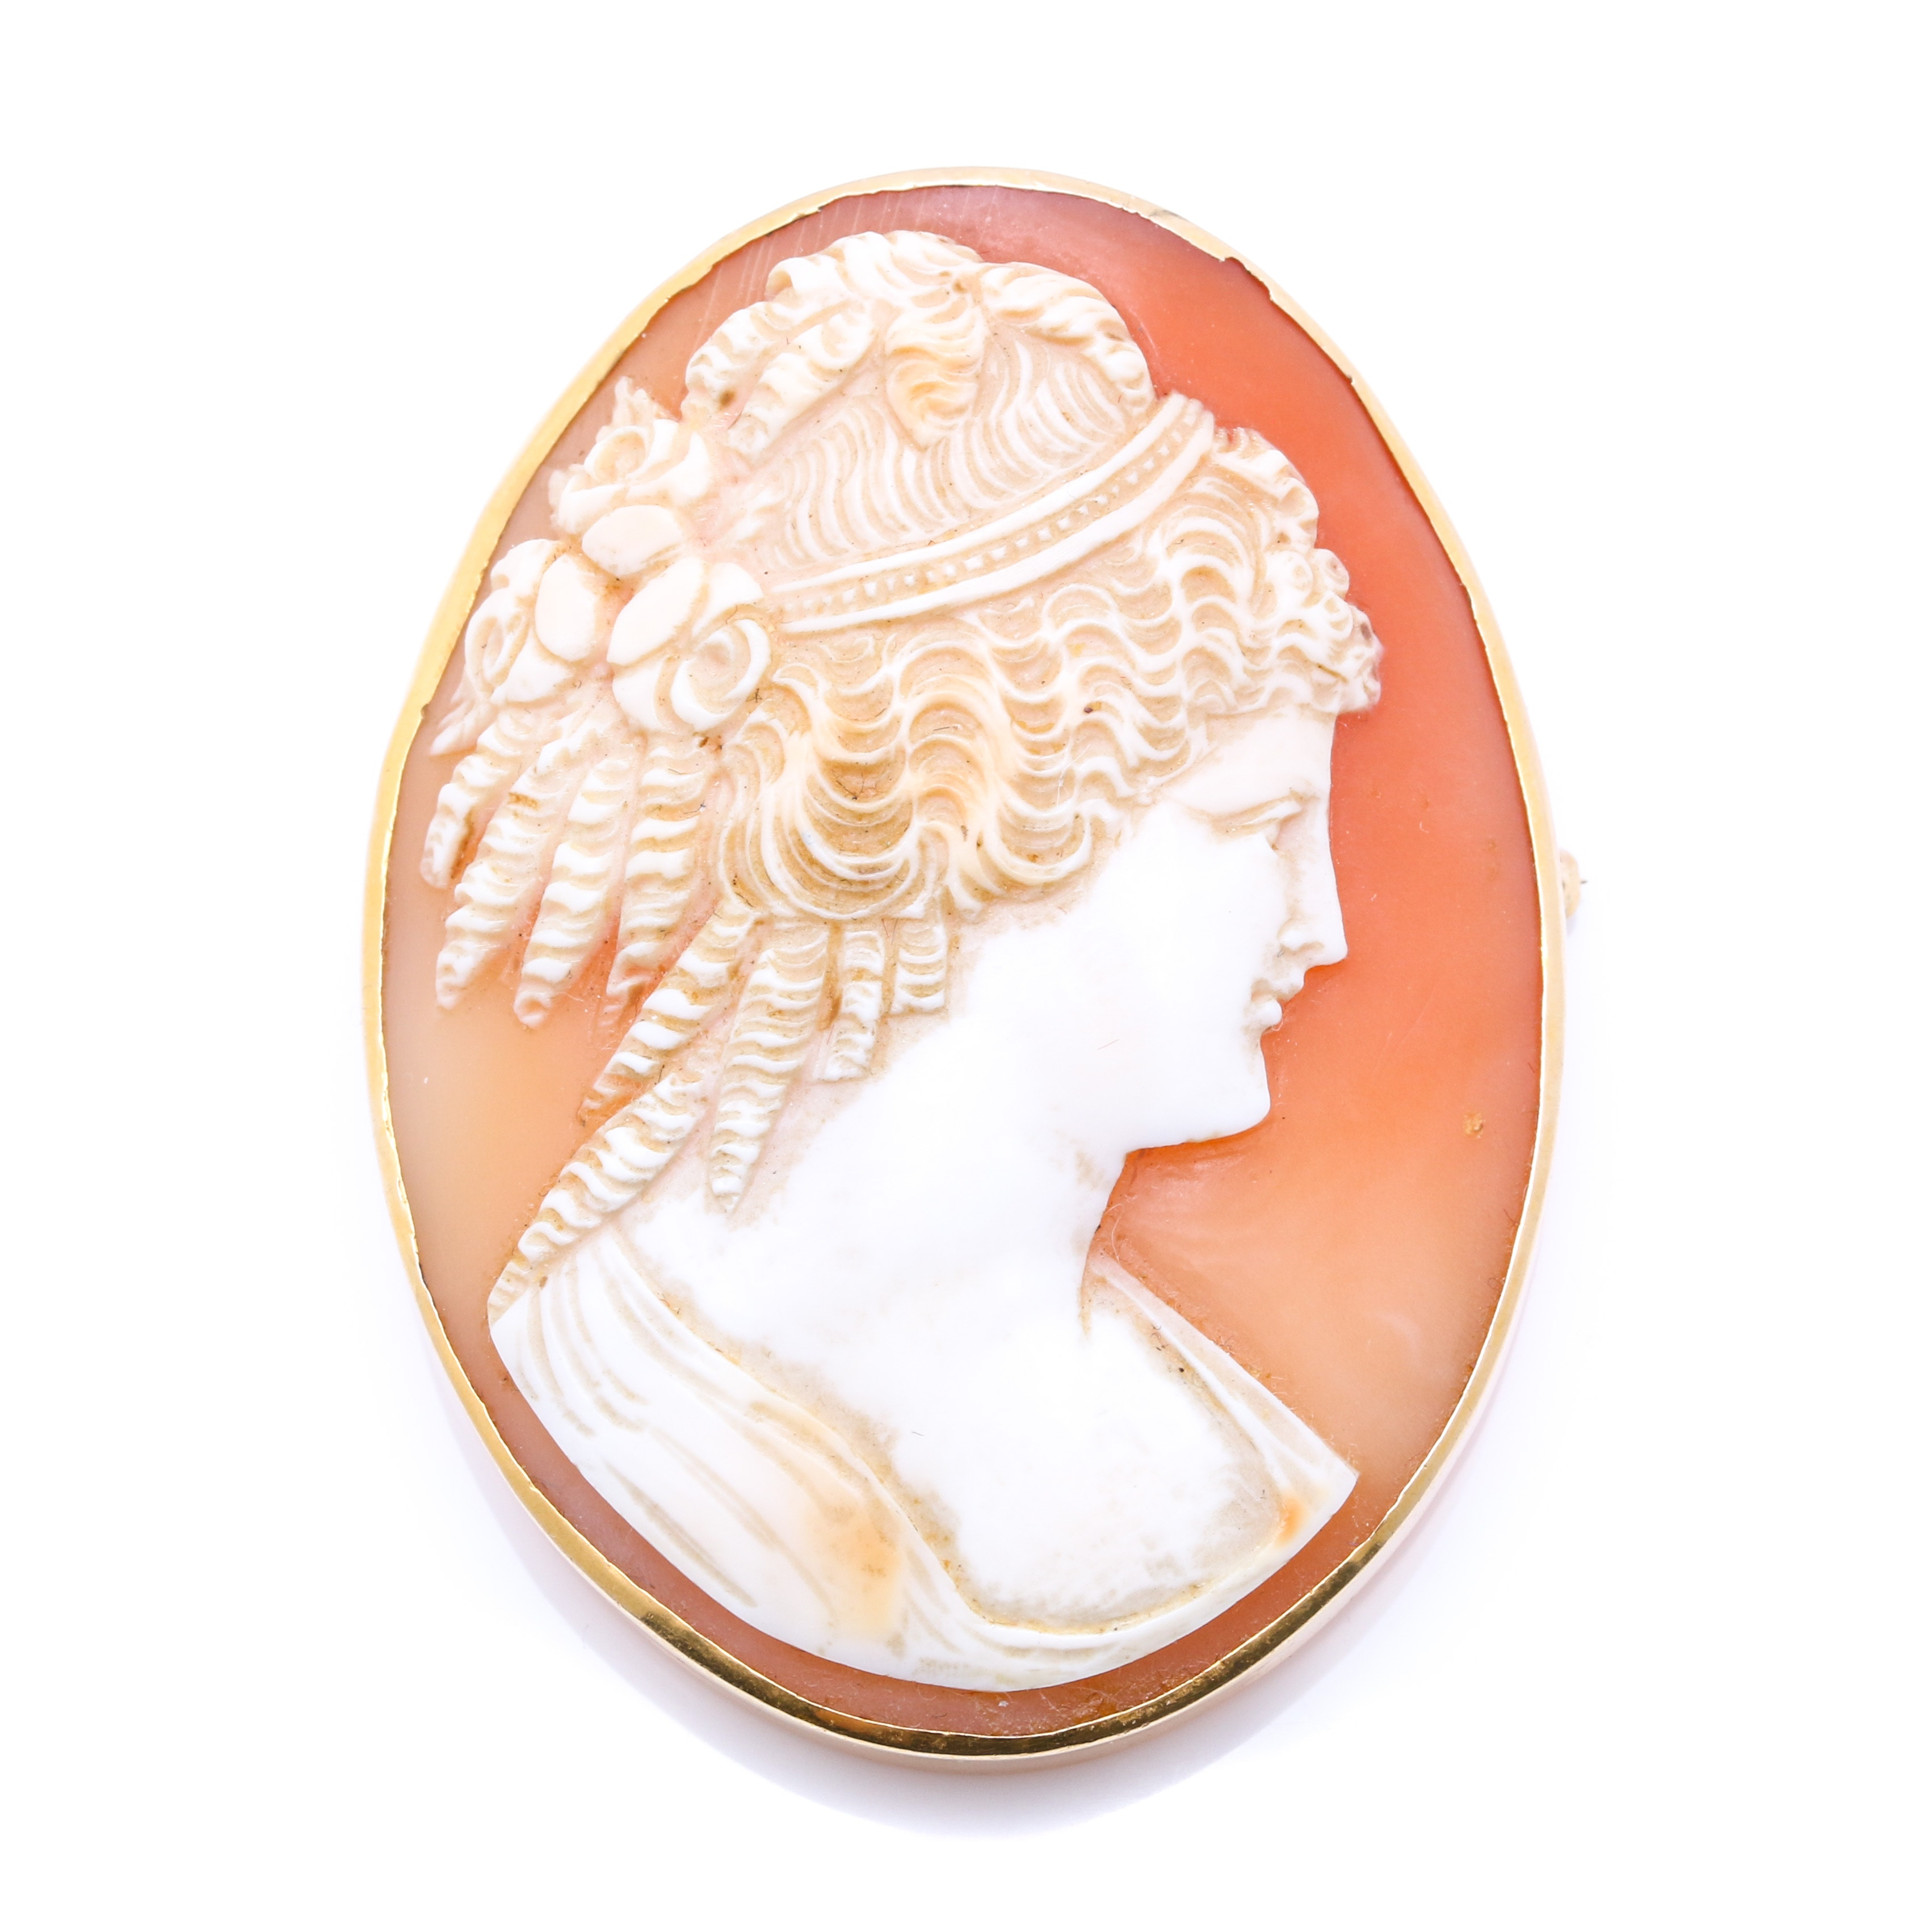 14K Yellow Gold Helmet Shell Cameo Convertible Pendant or Brooch